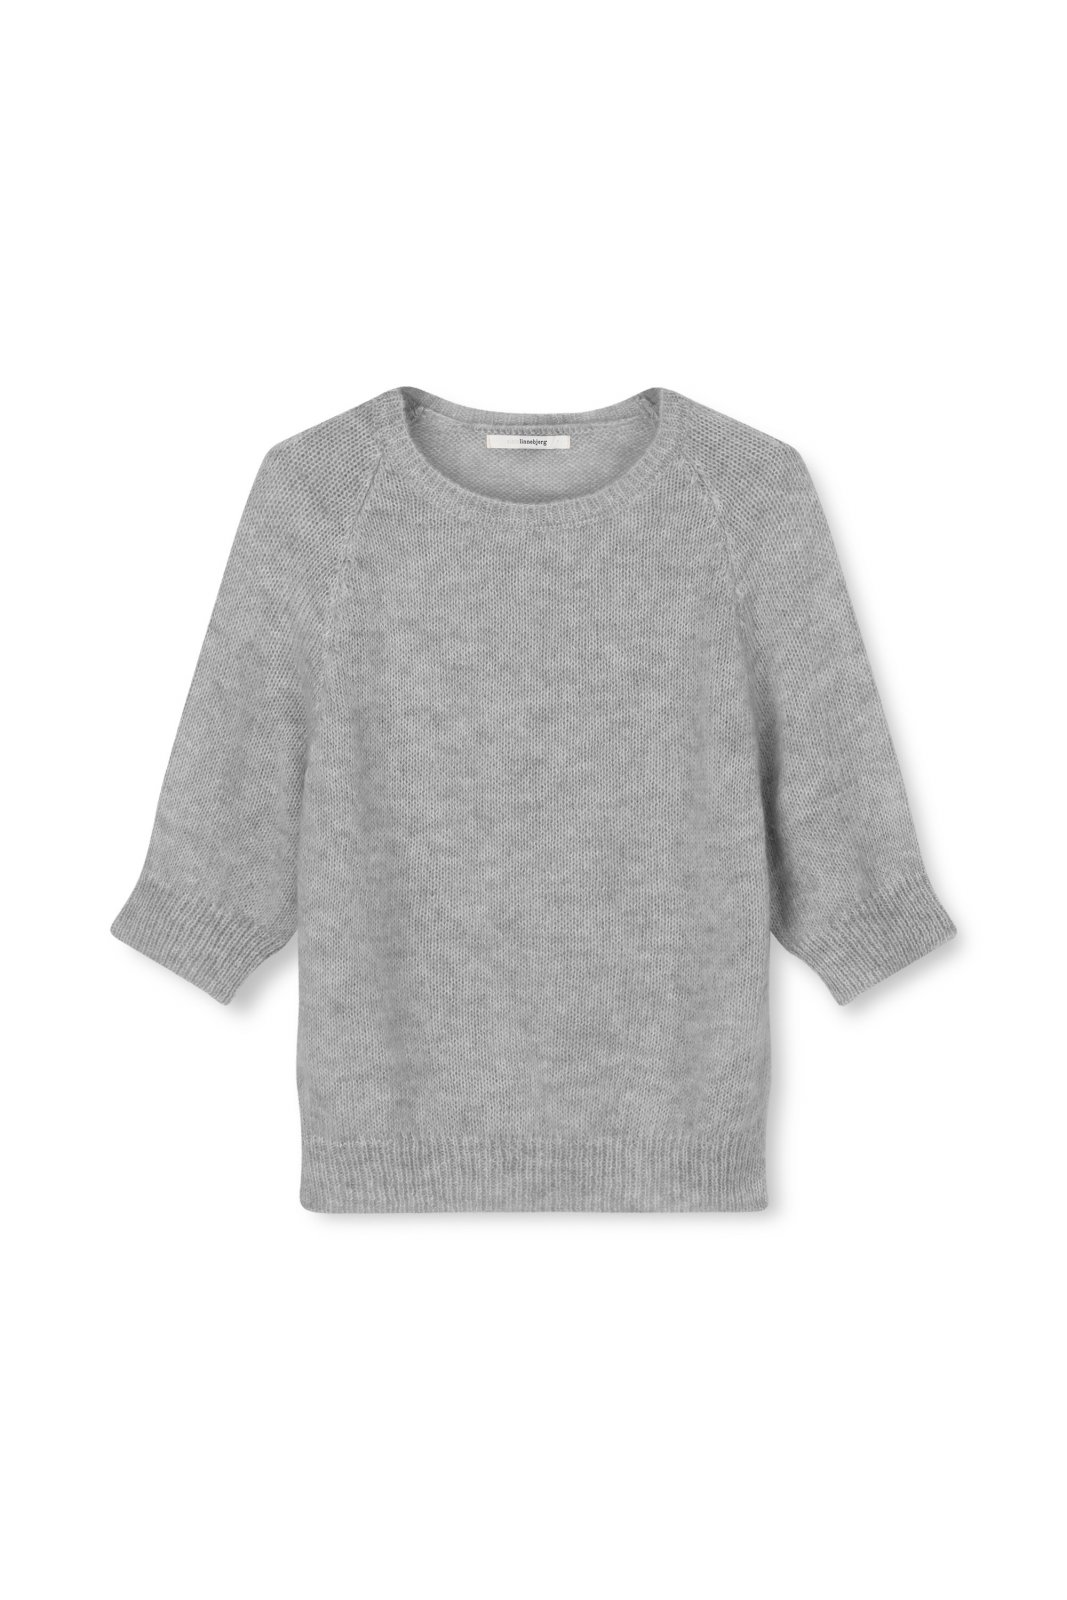 ROSIE SWEAT GREY 9114